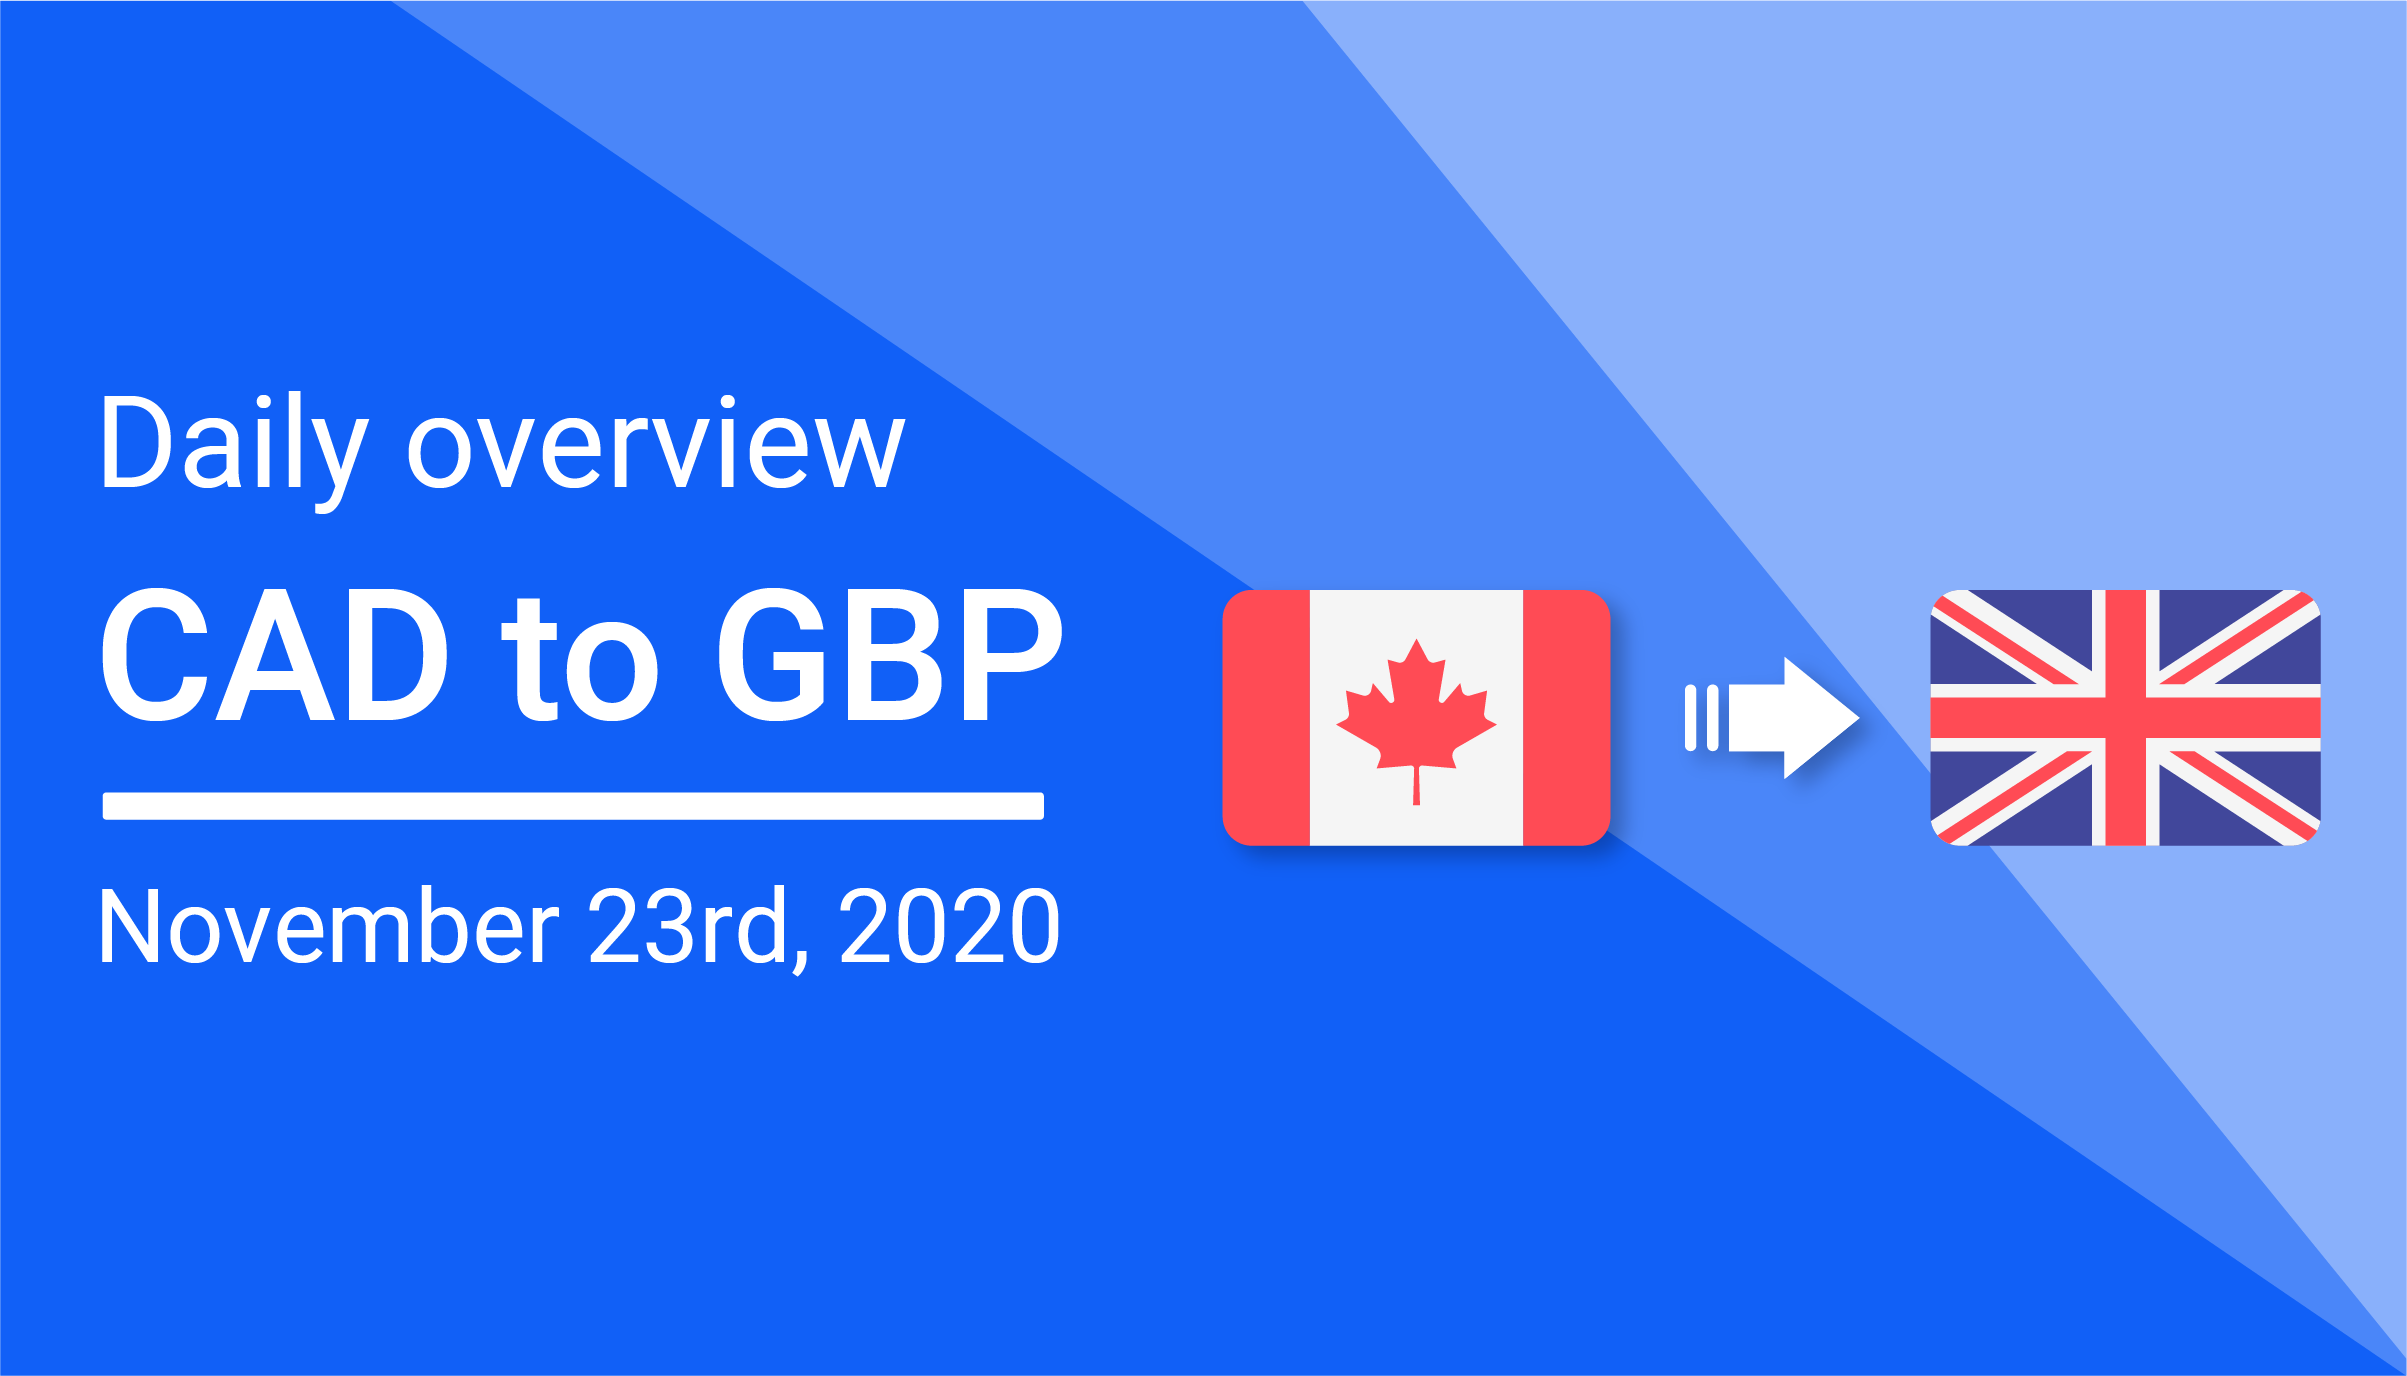 GBP to CAD Daily Overview: November 23rd